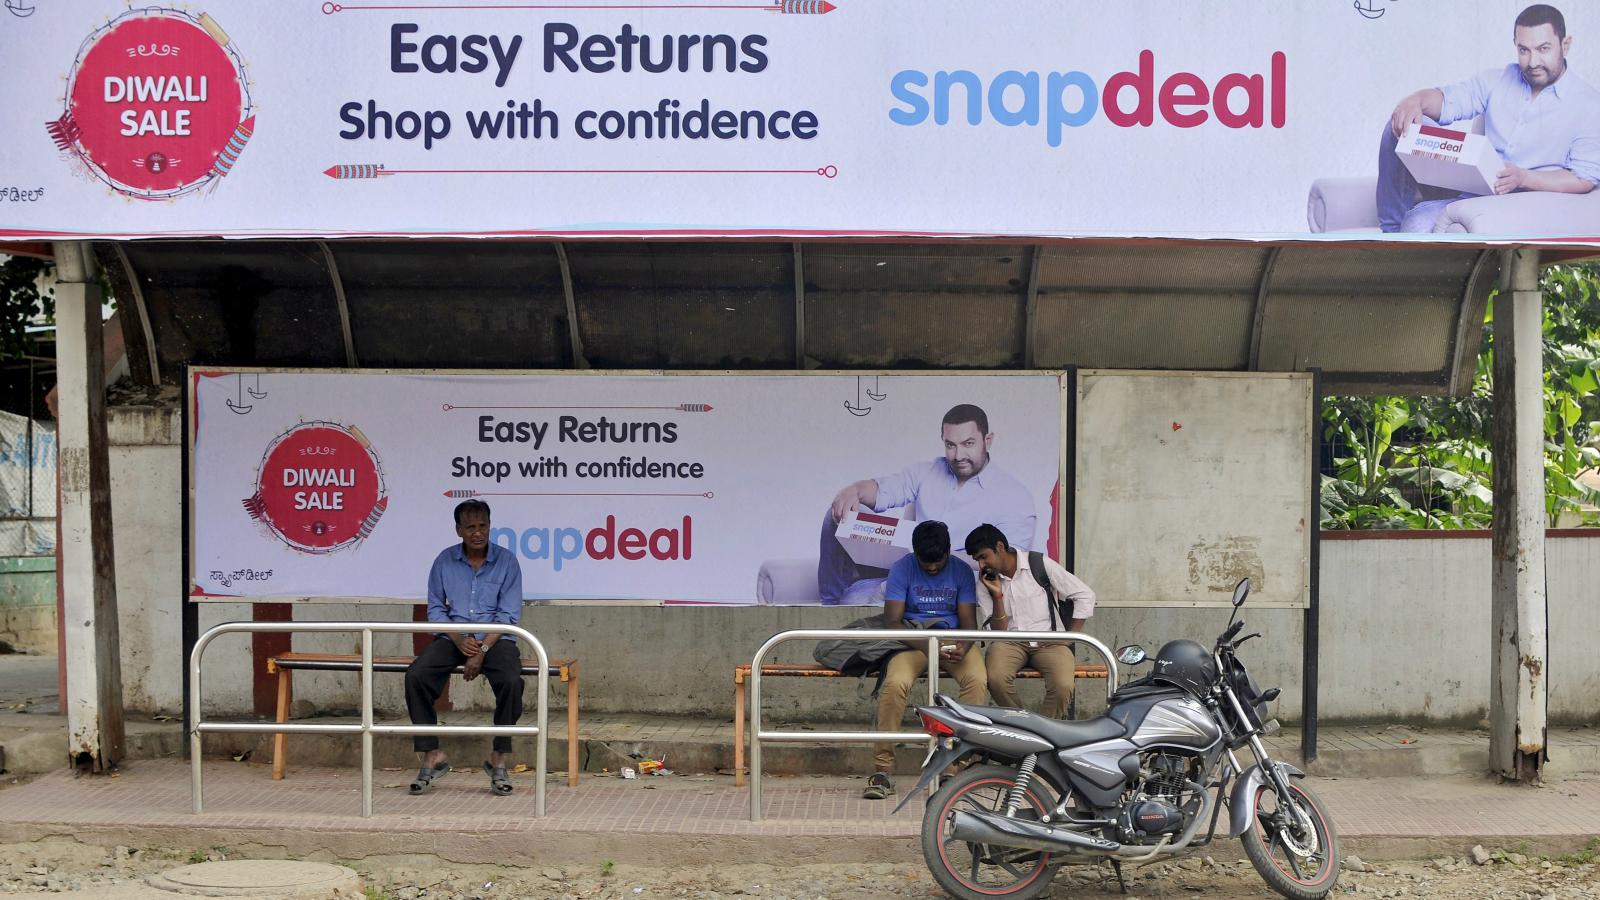 cdffb93c6 An average online shopper in India is a man aged 25-34 years buying  electronics through his mobile phone — Quartz India